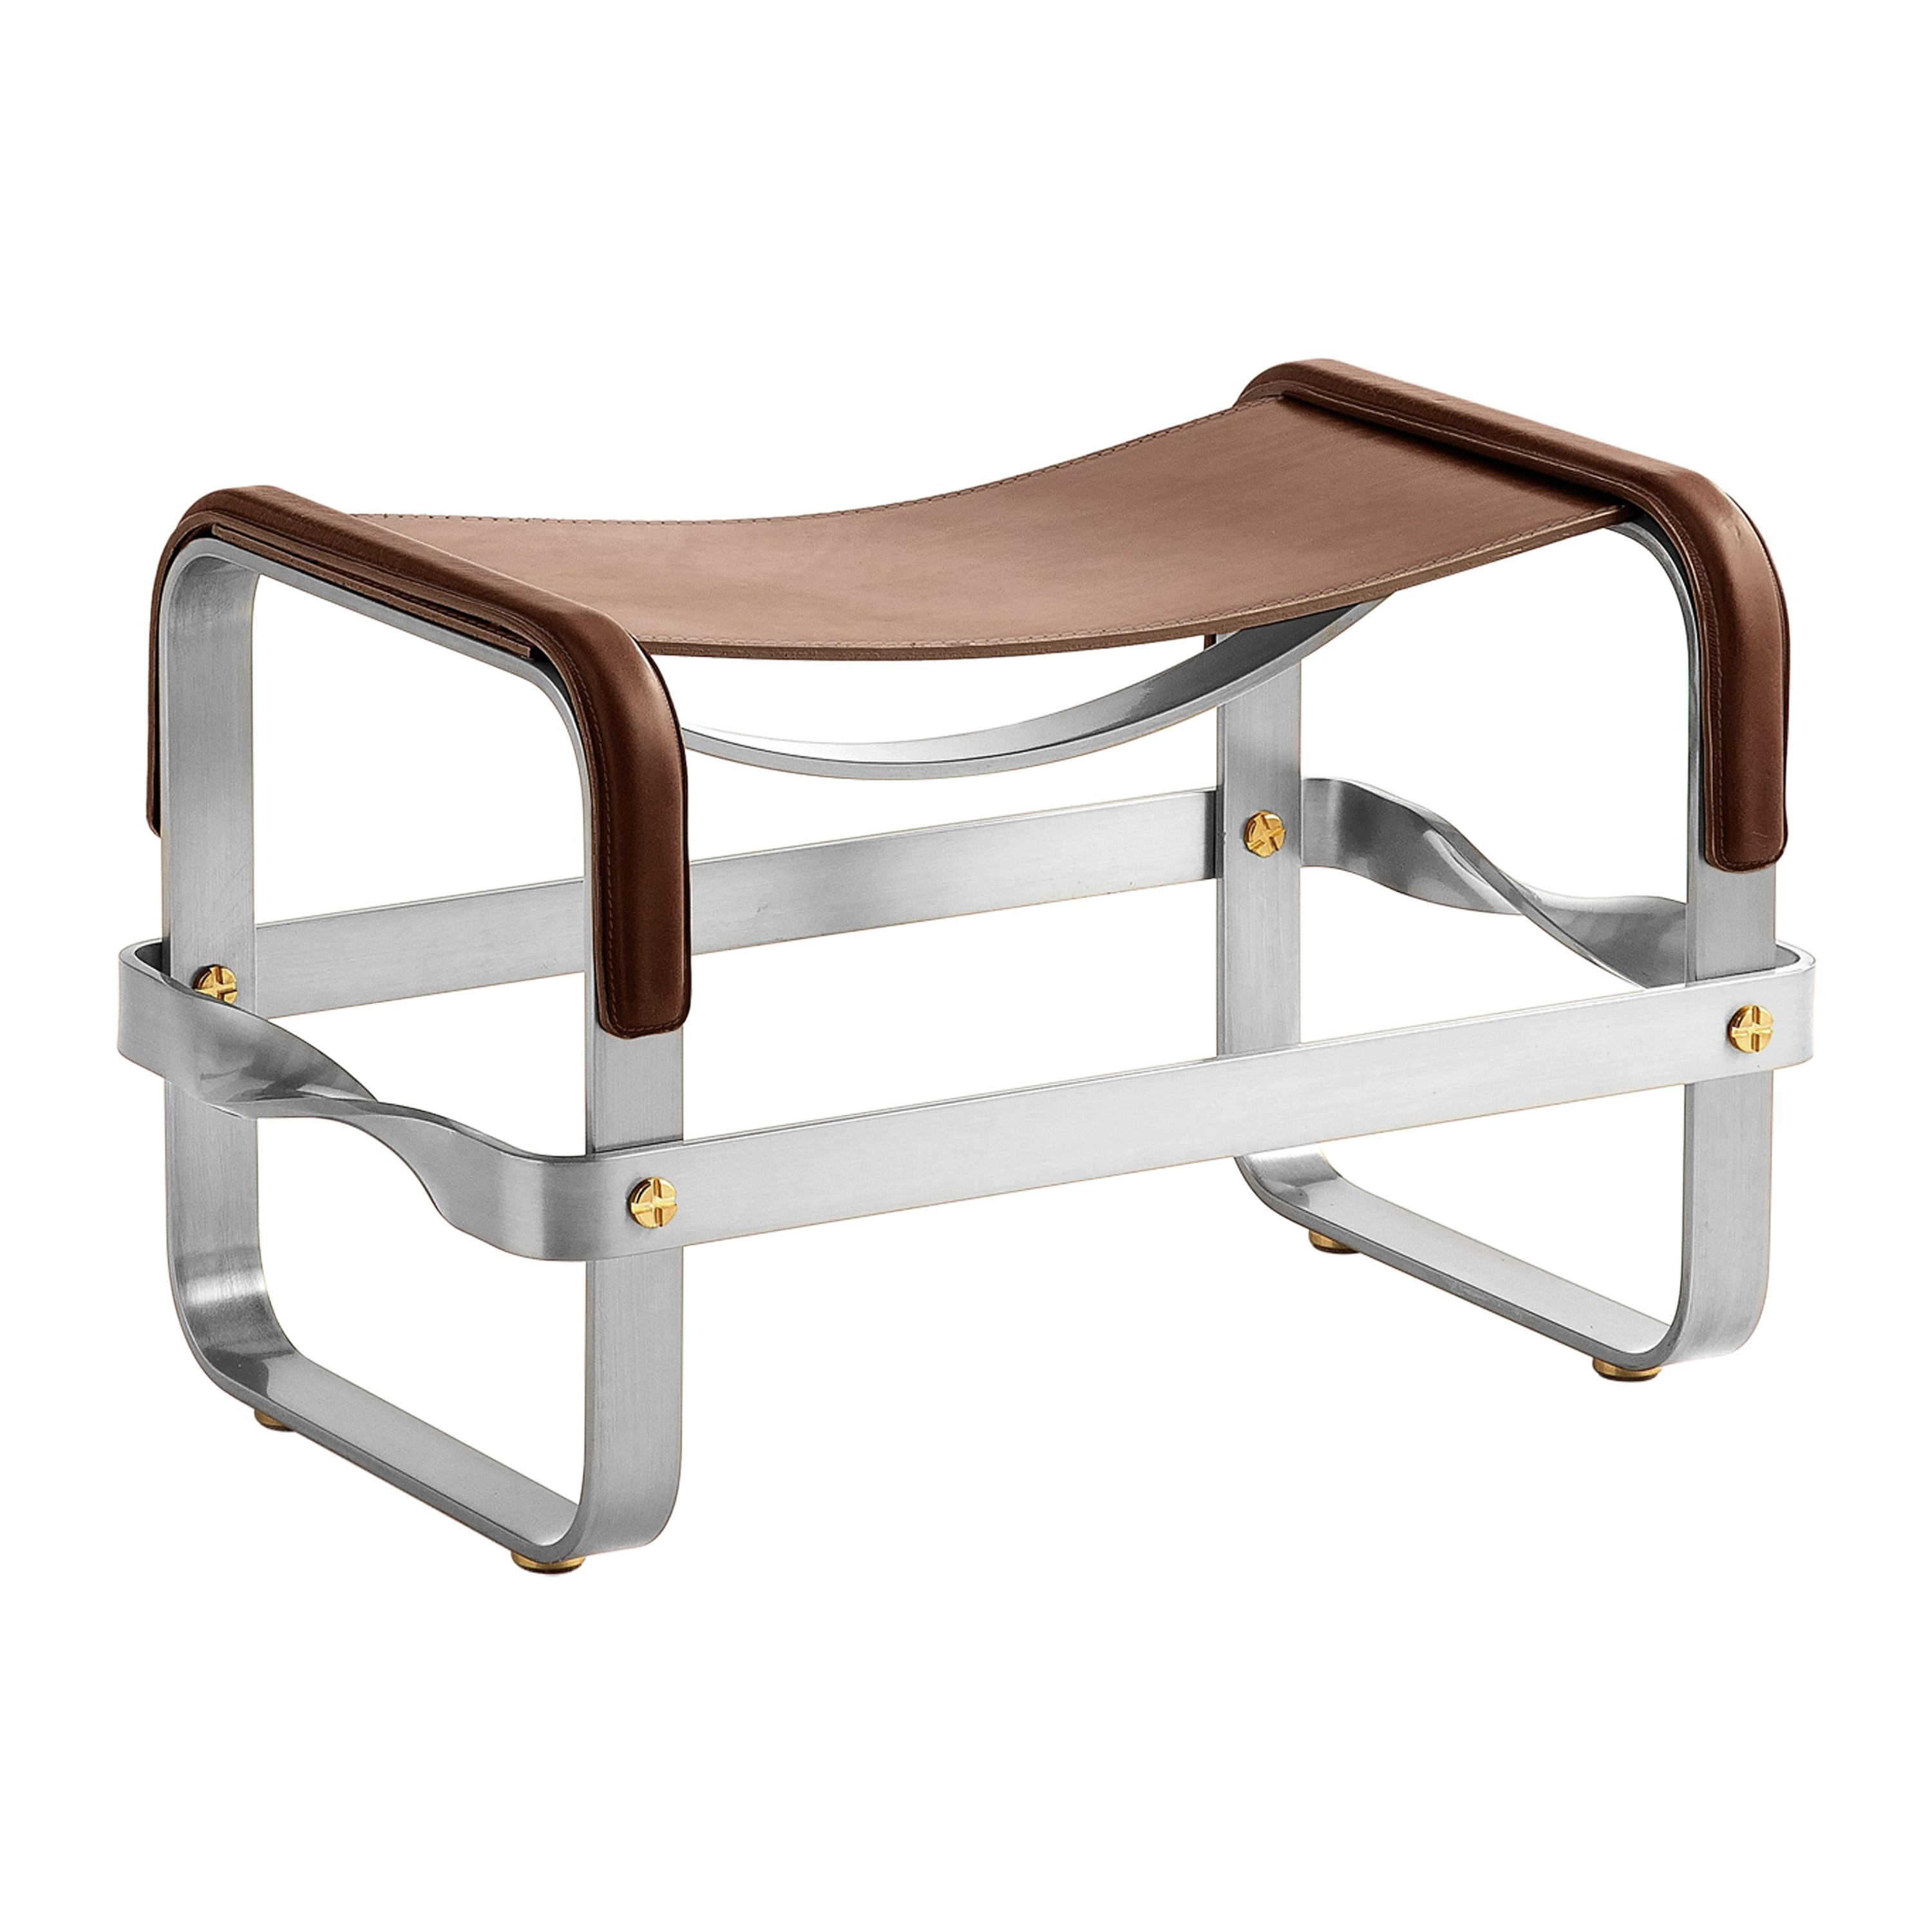 Footstool Old Silver Steel & Dark Brown Saddle Leather, Contemporary Style